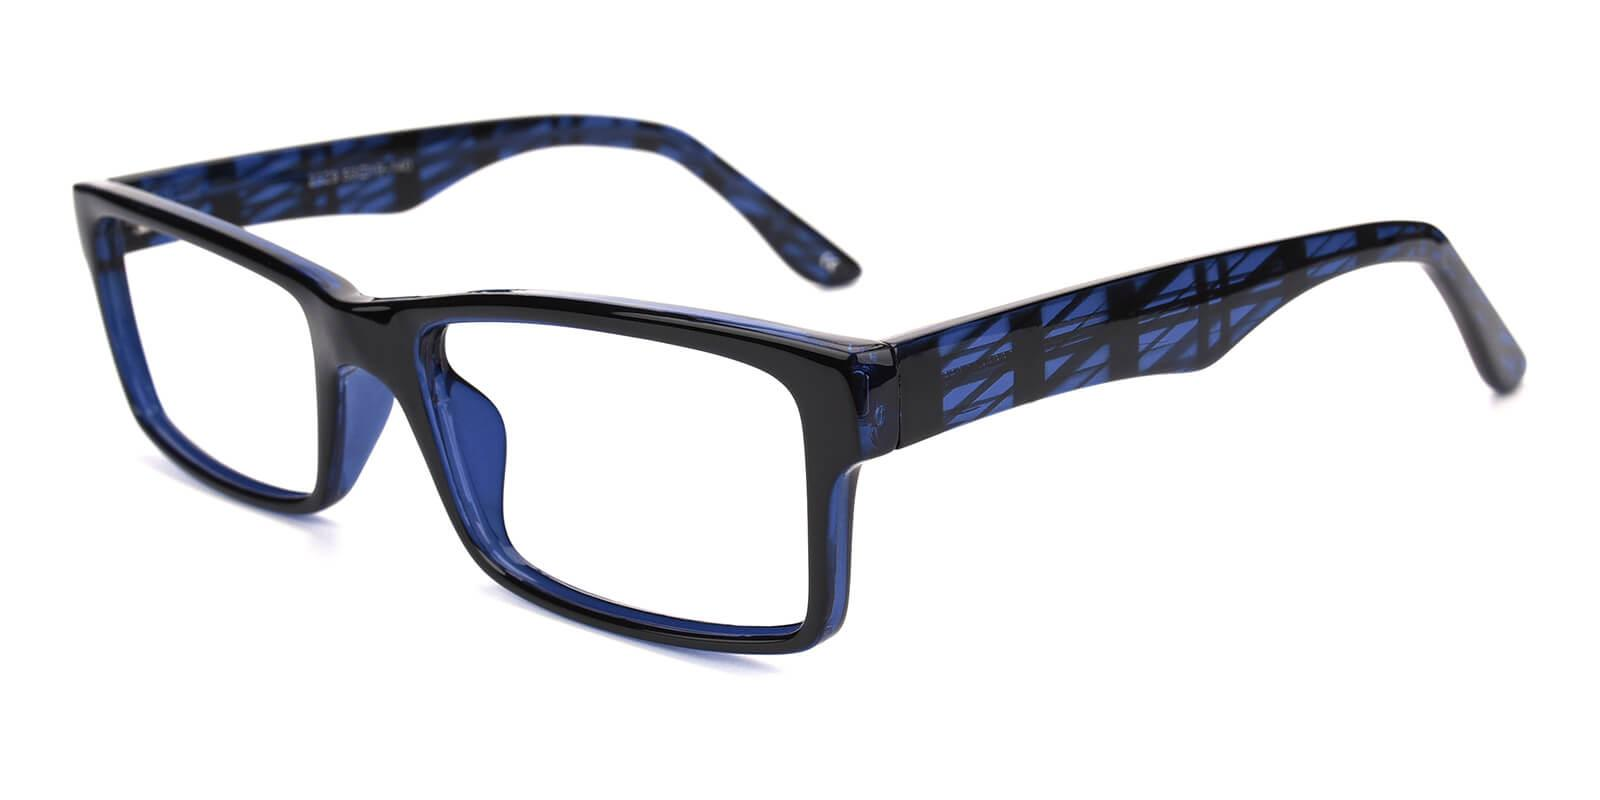 Moosern-Blue-Rectangle-Acetate-Eyeglasses-additional1